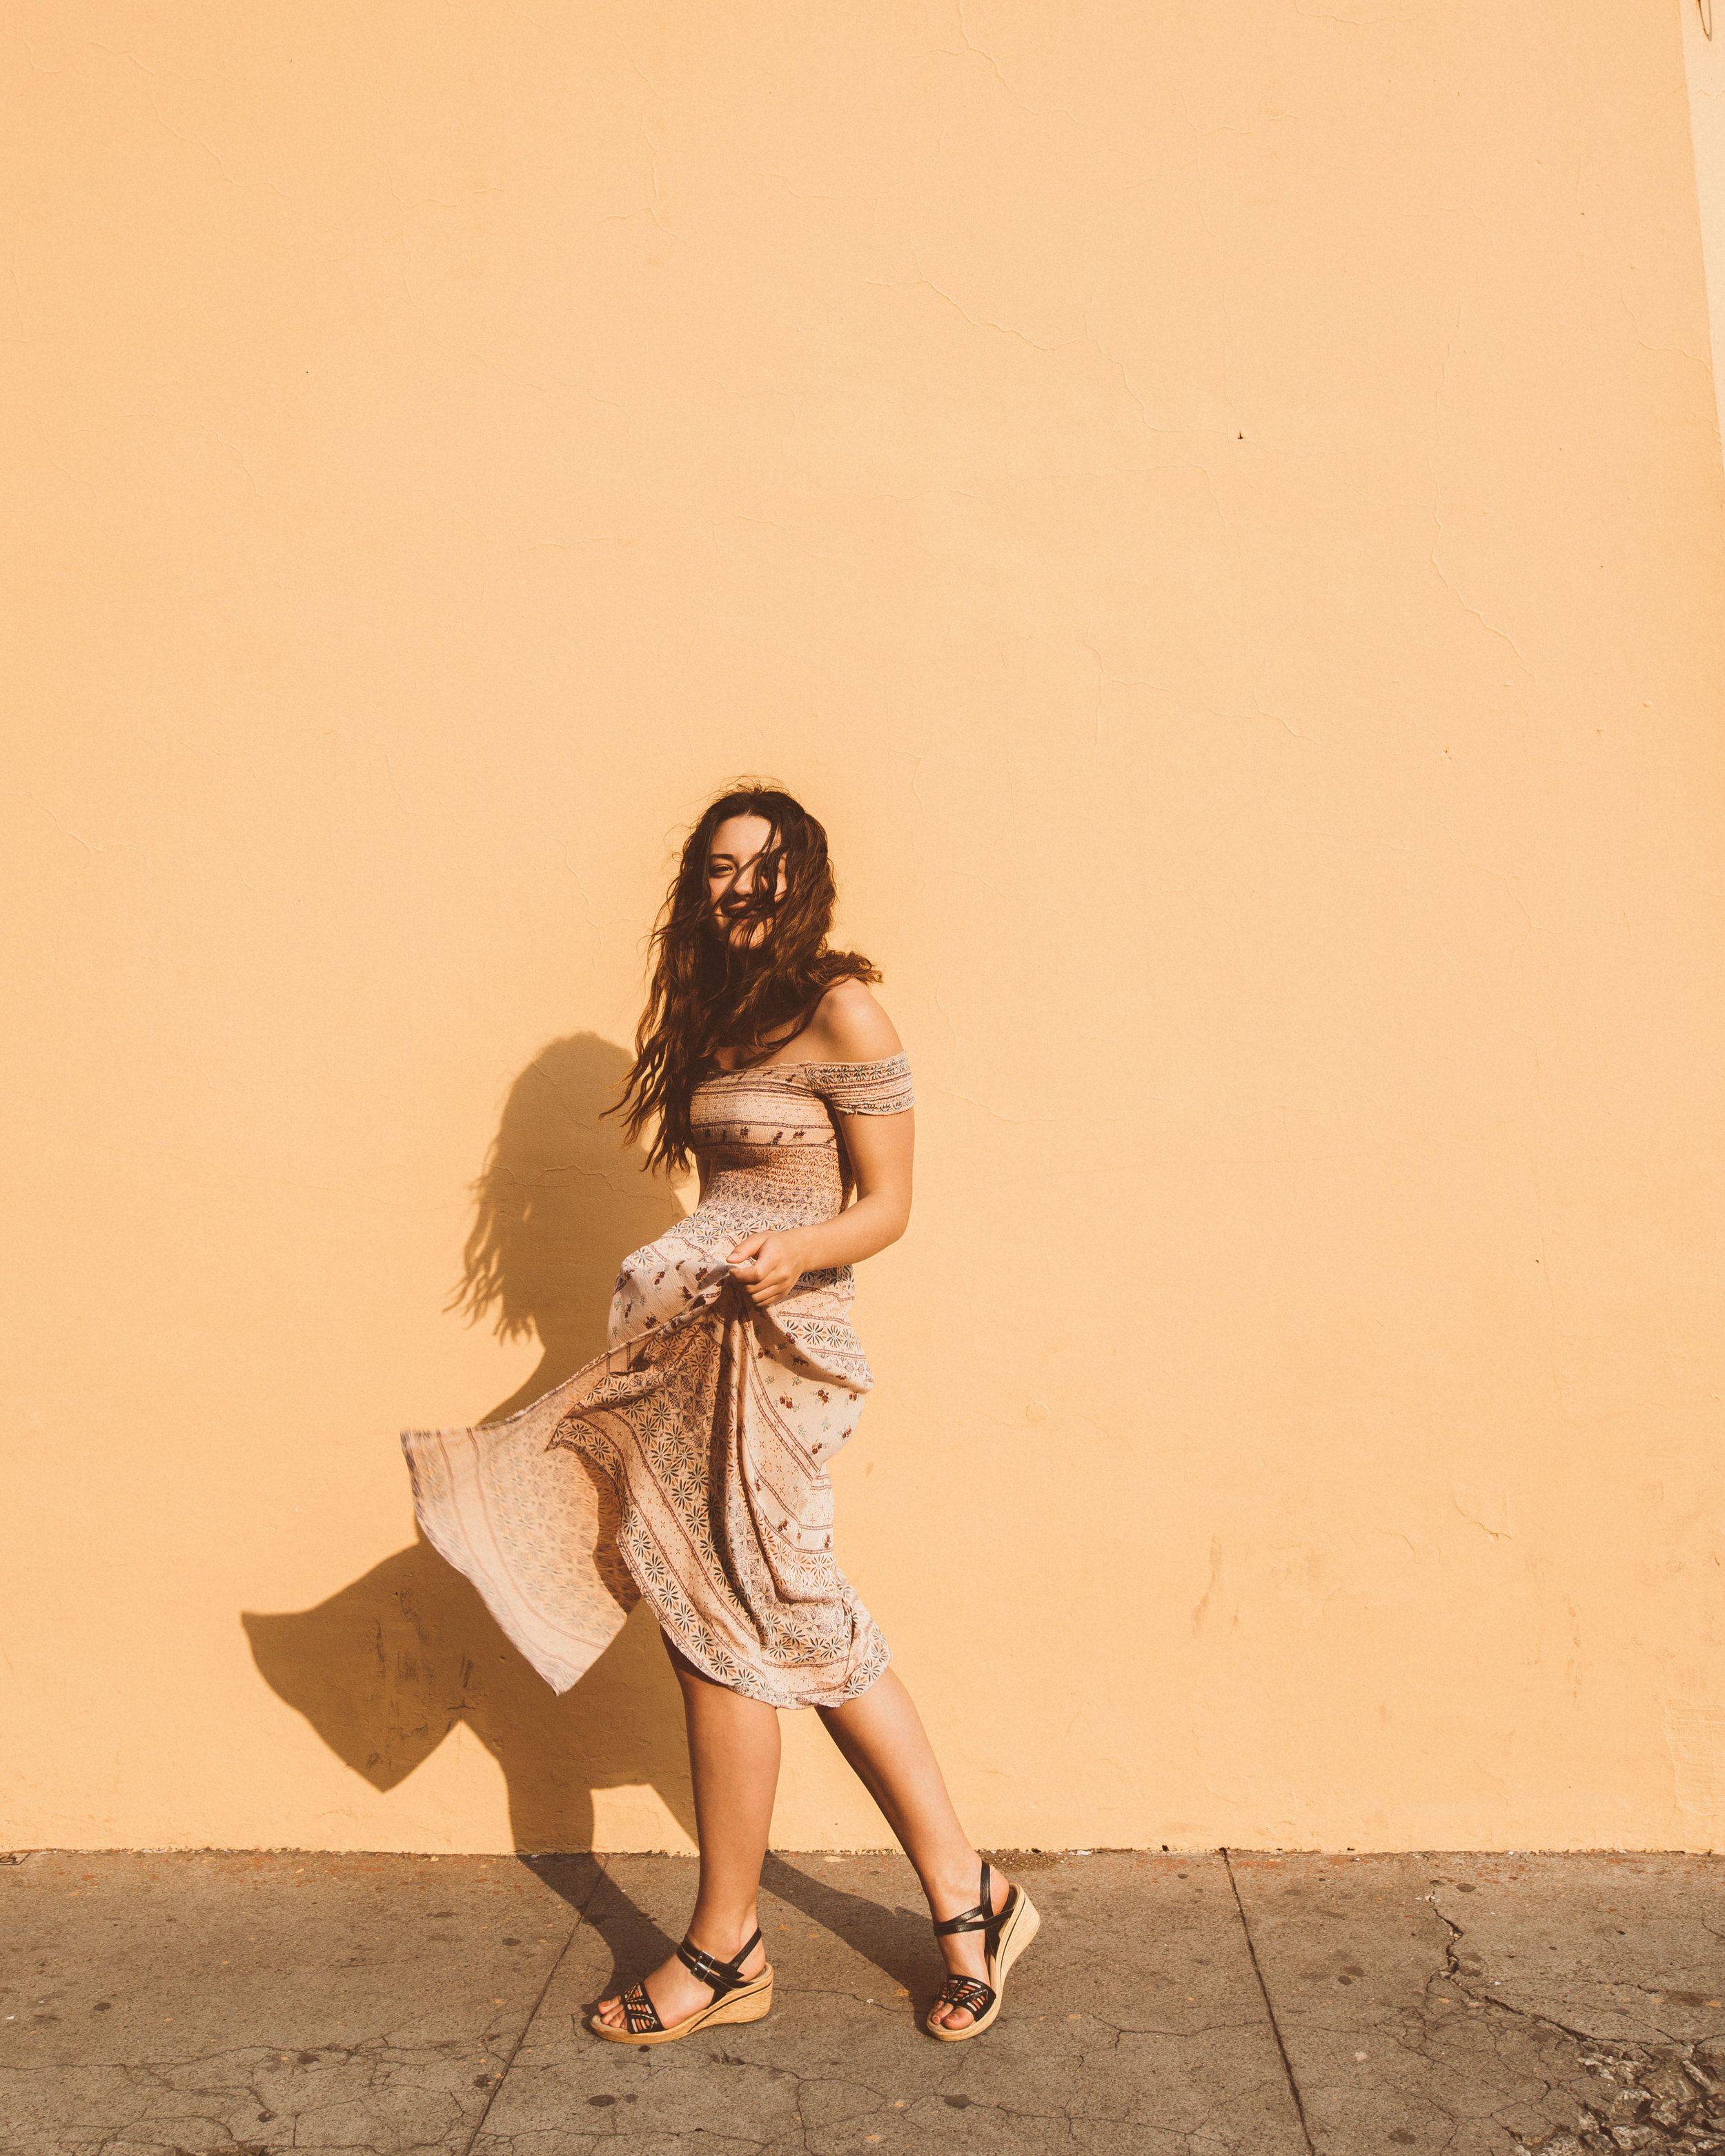 roaming around in the sunshine -- and finding every sunshine-colored wall in sight.